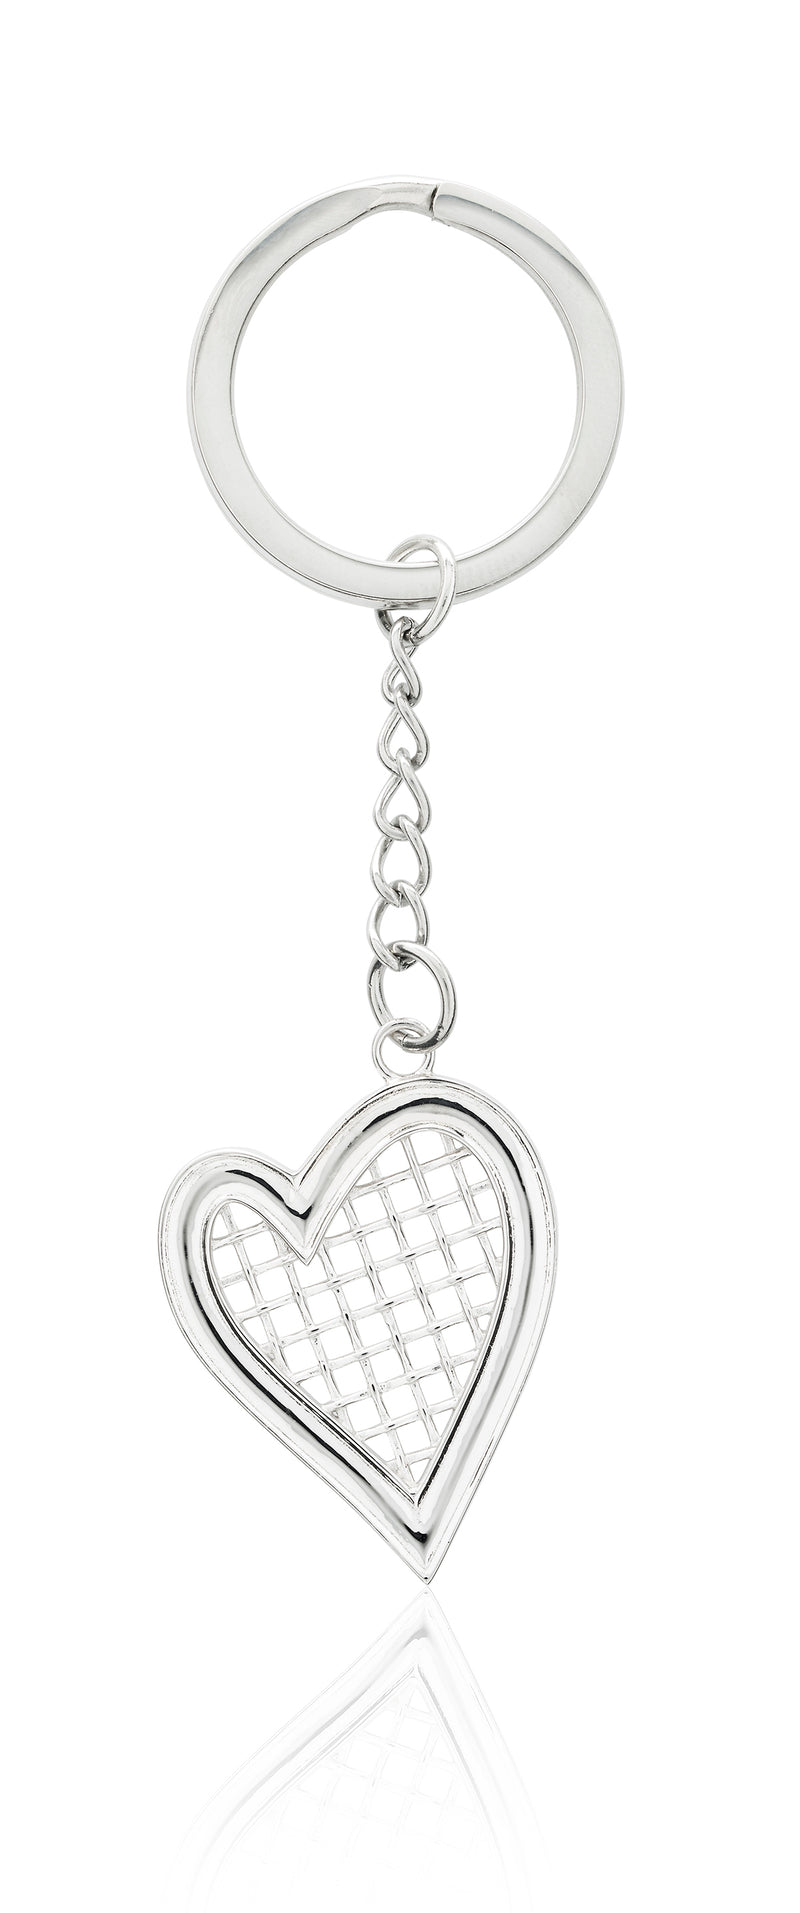 Heart Strings Key Ring Sterling Silver XL